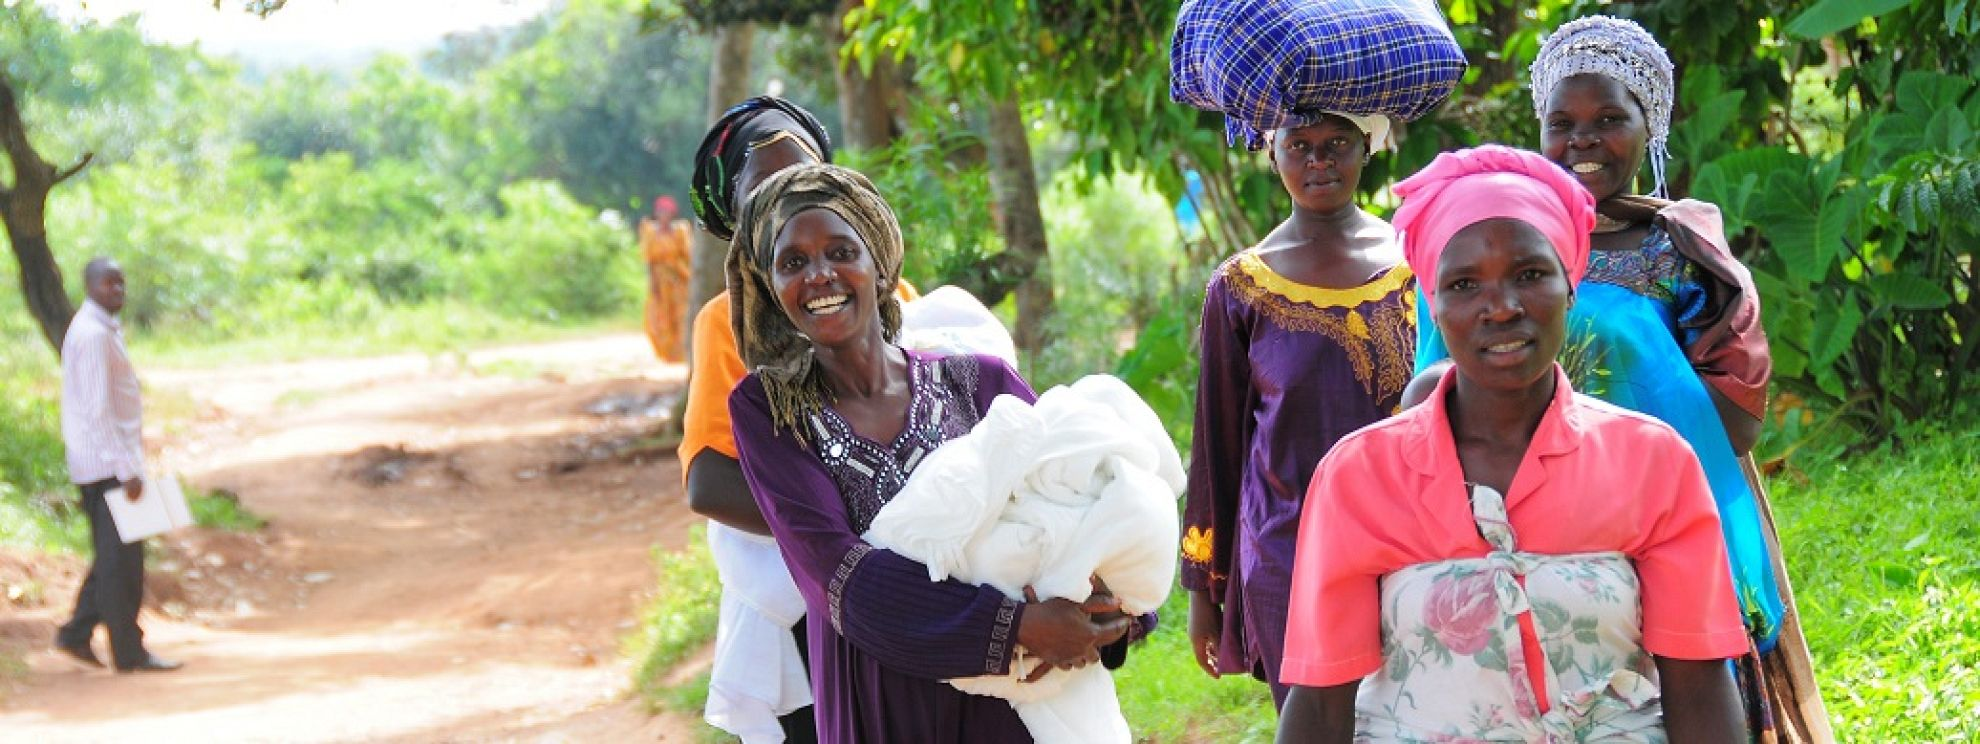 Latest News Unprecedented net gains the role of insecticidal treated nets in fighting malaria